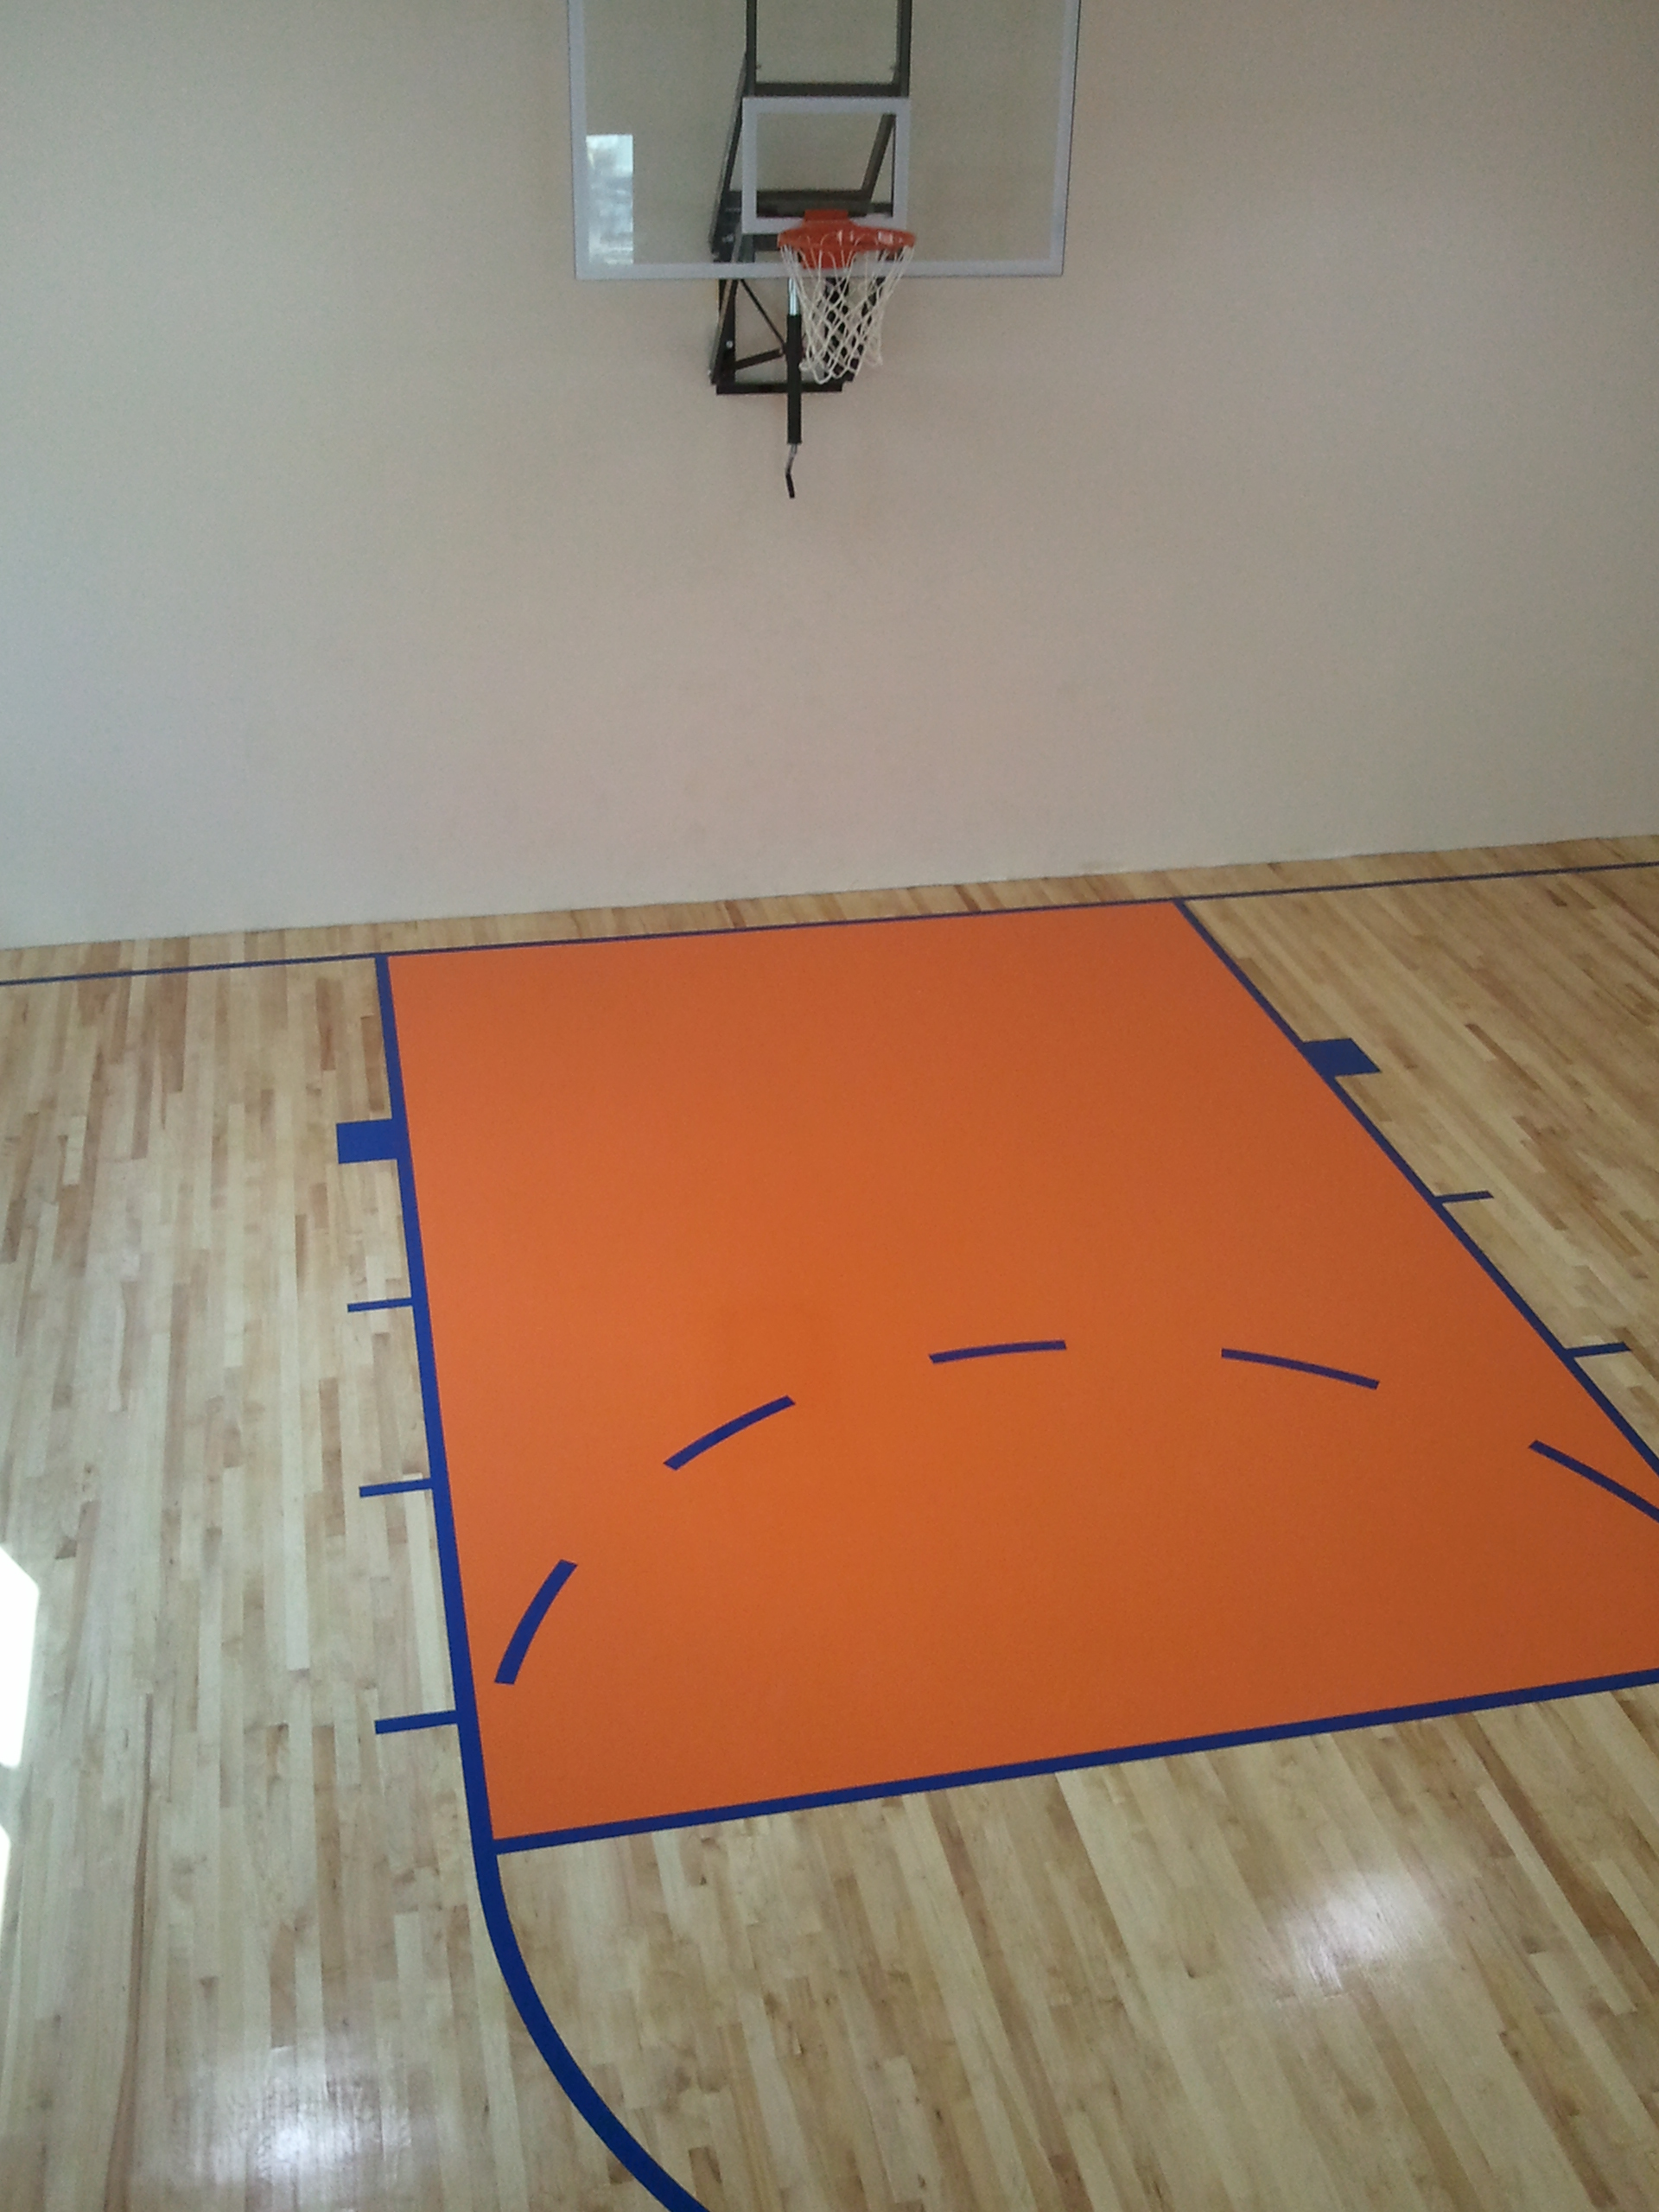 palmetto prep court detailed basketball sanding floor project bastketball portfolio item floors projects